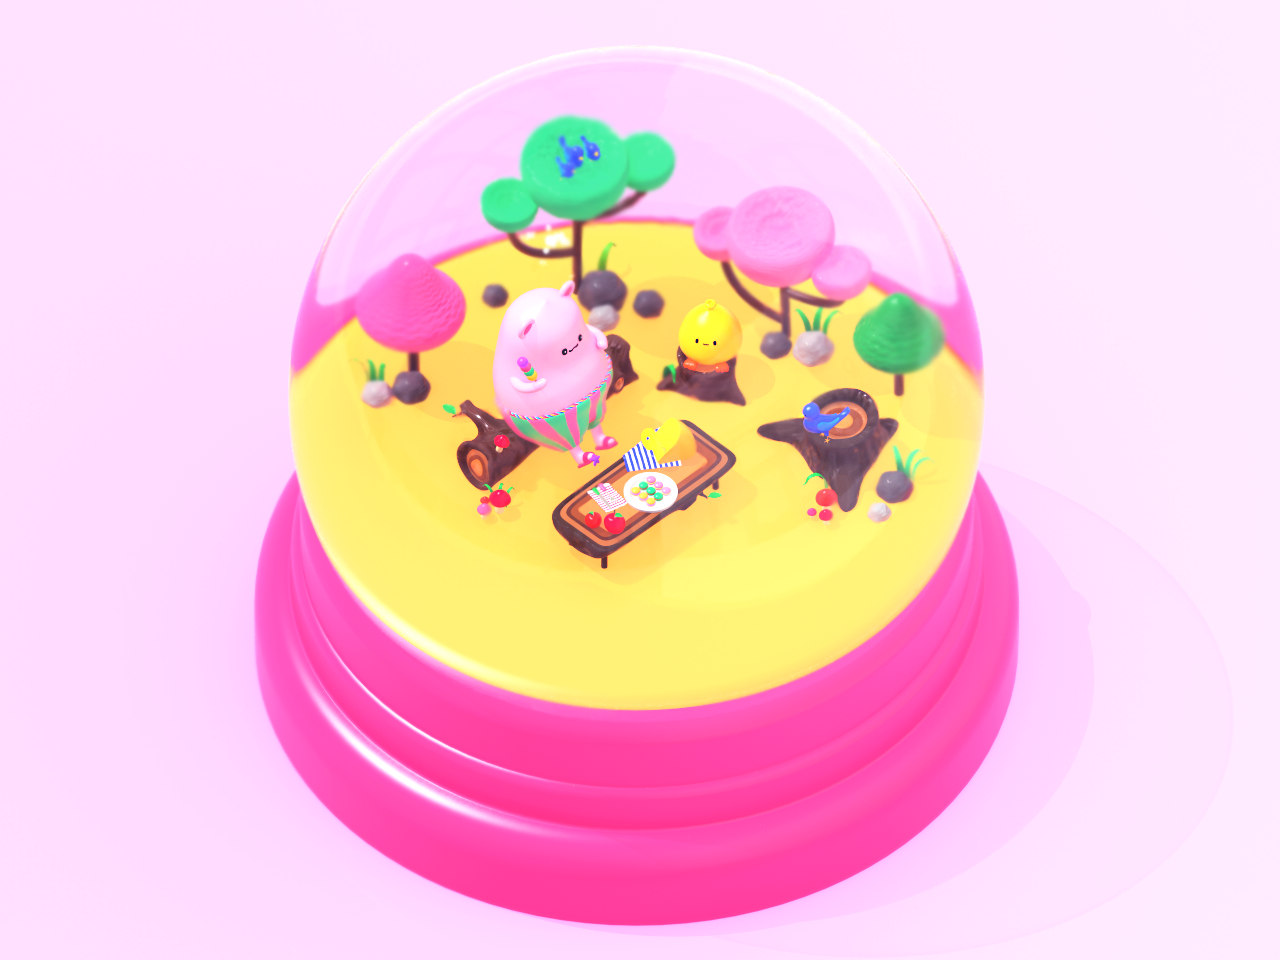 The First Day of Spring colour color redshift 햄찌 캐릭터 hamster friends hamzzi garden spring arttoy pink character design cute character artwork c4d 3d